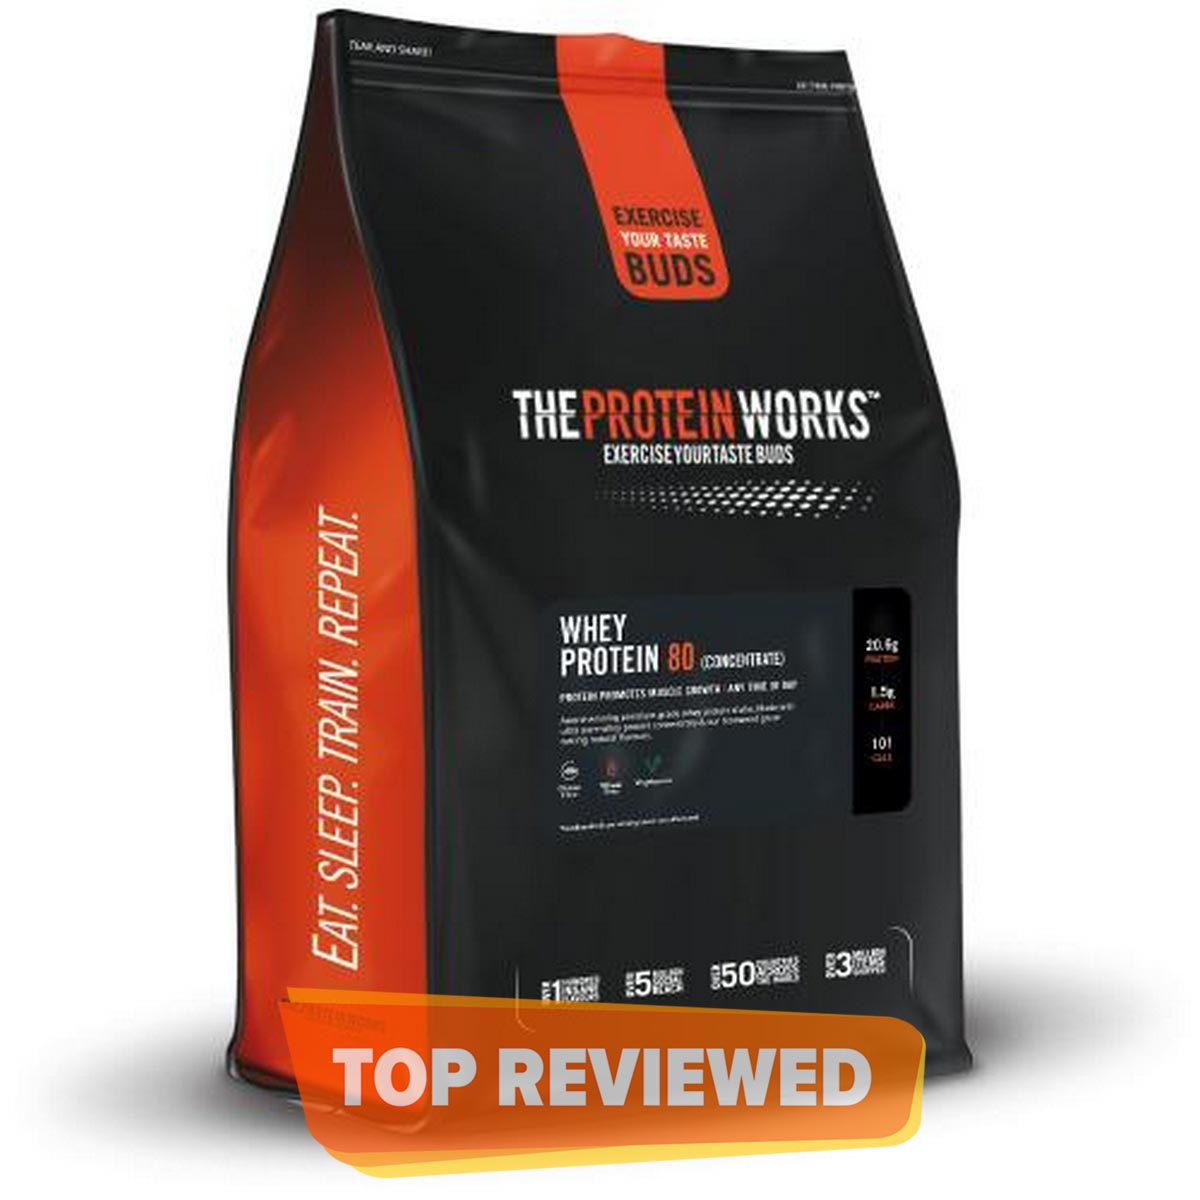 The Protein Works Whey Protein 80 - 1 kg (2.2 lbs) - Chocolate Silk